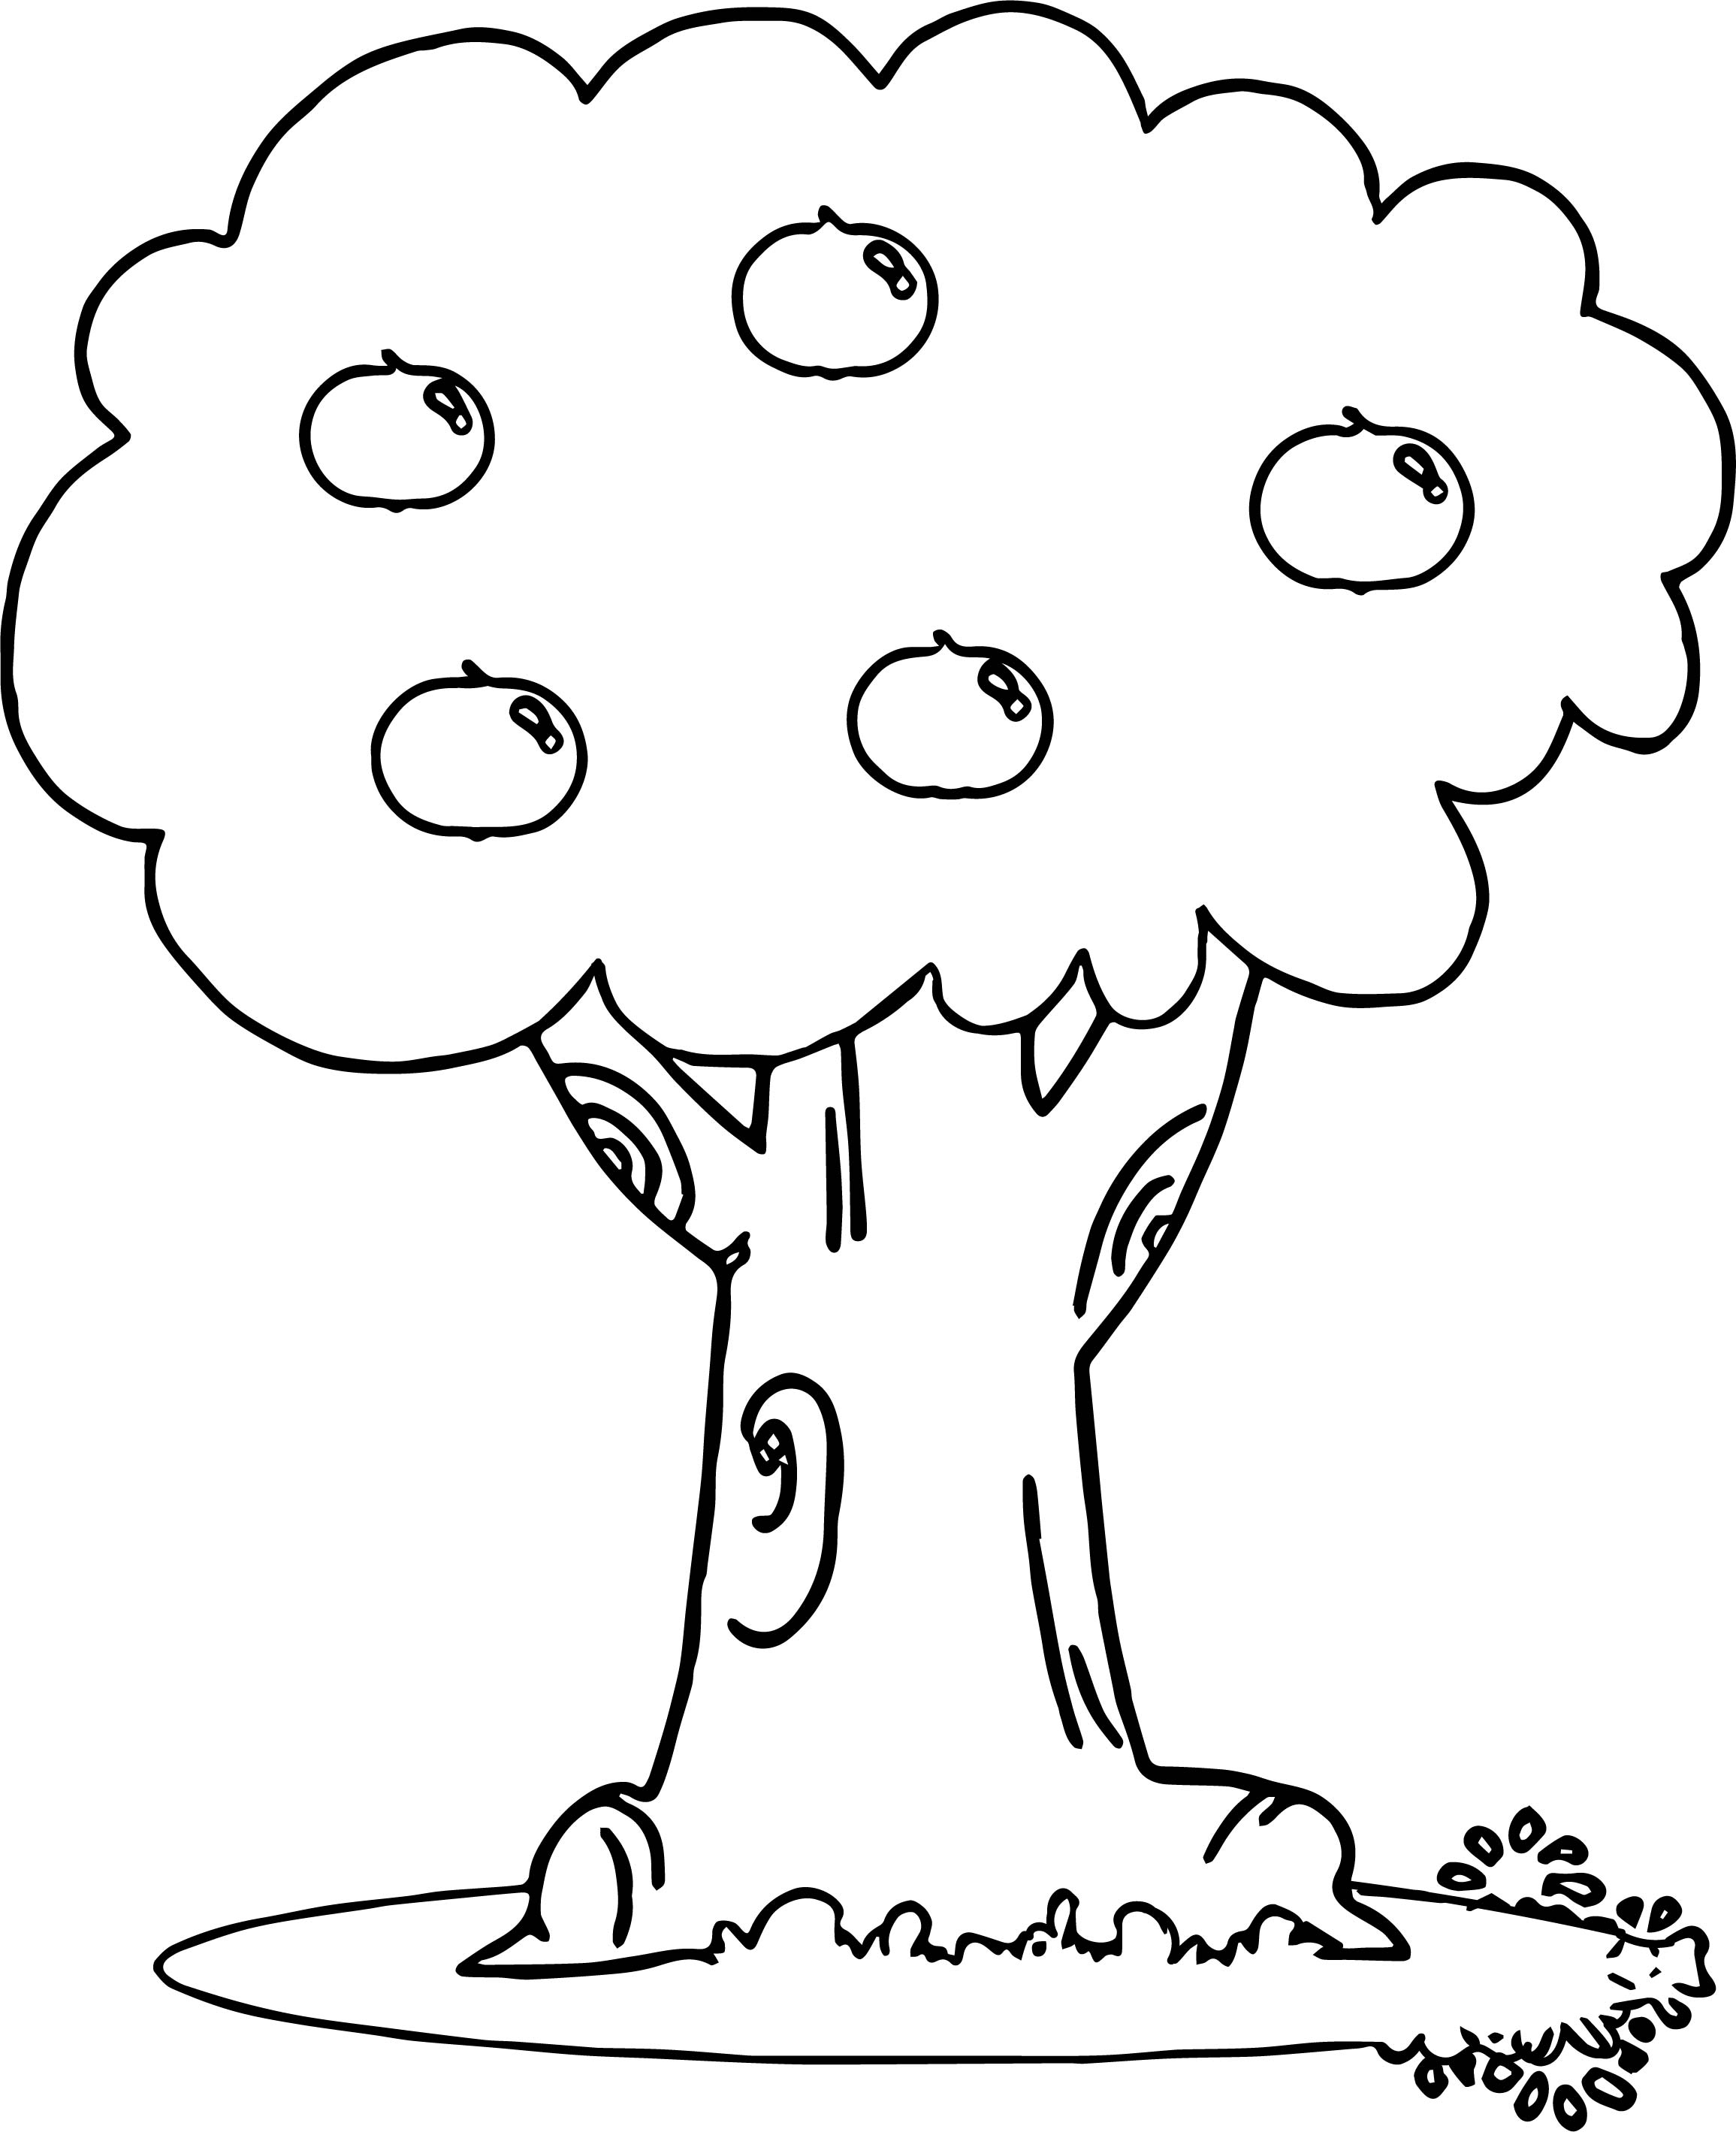 wonderful apple tree coloring page - Apple Tree Coloring Page